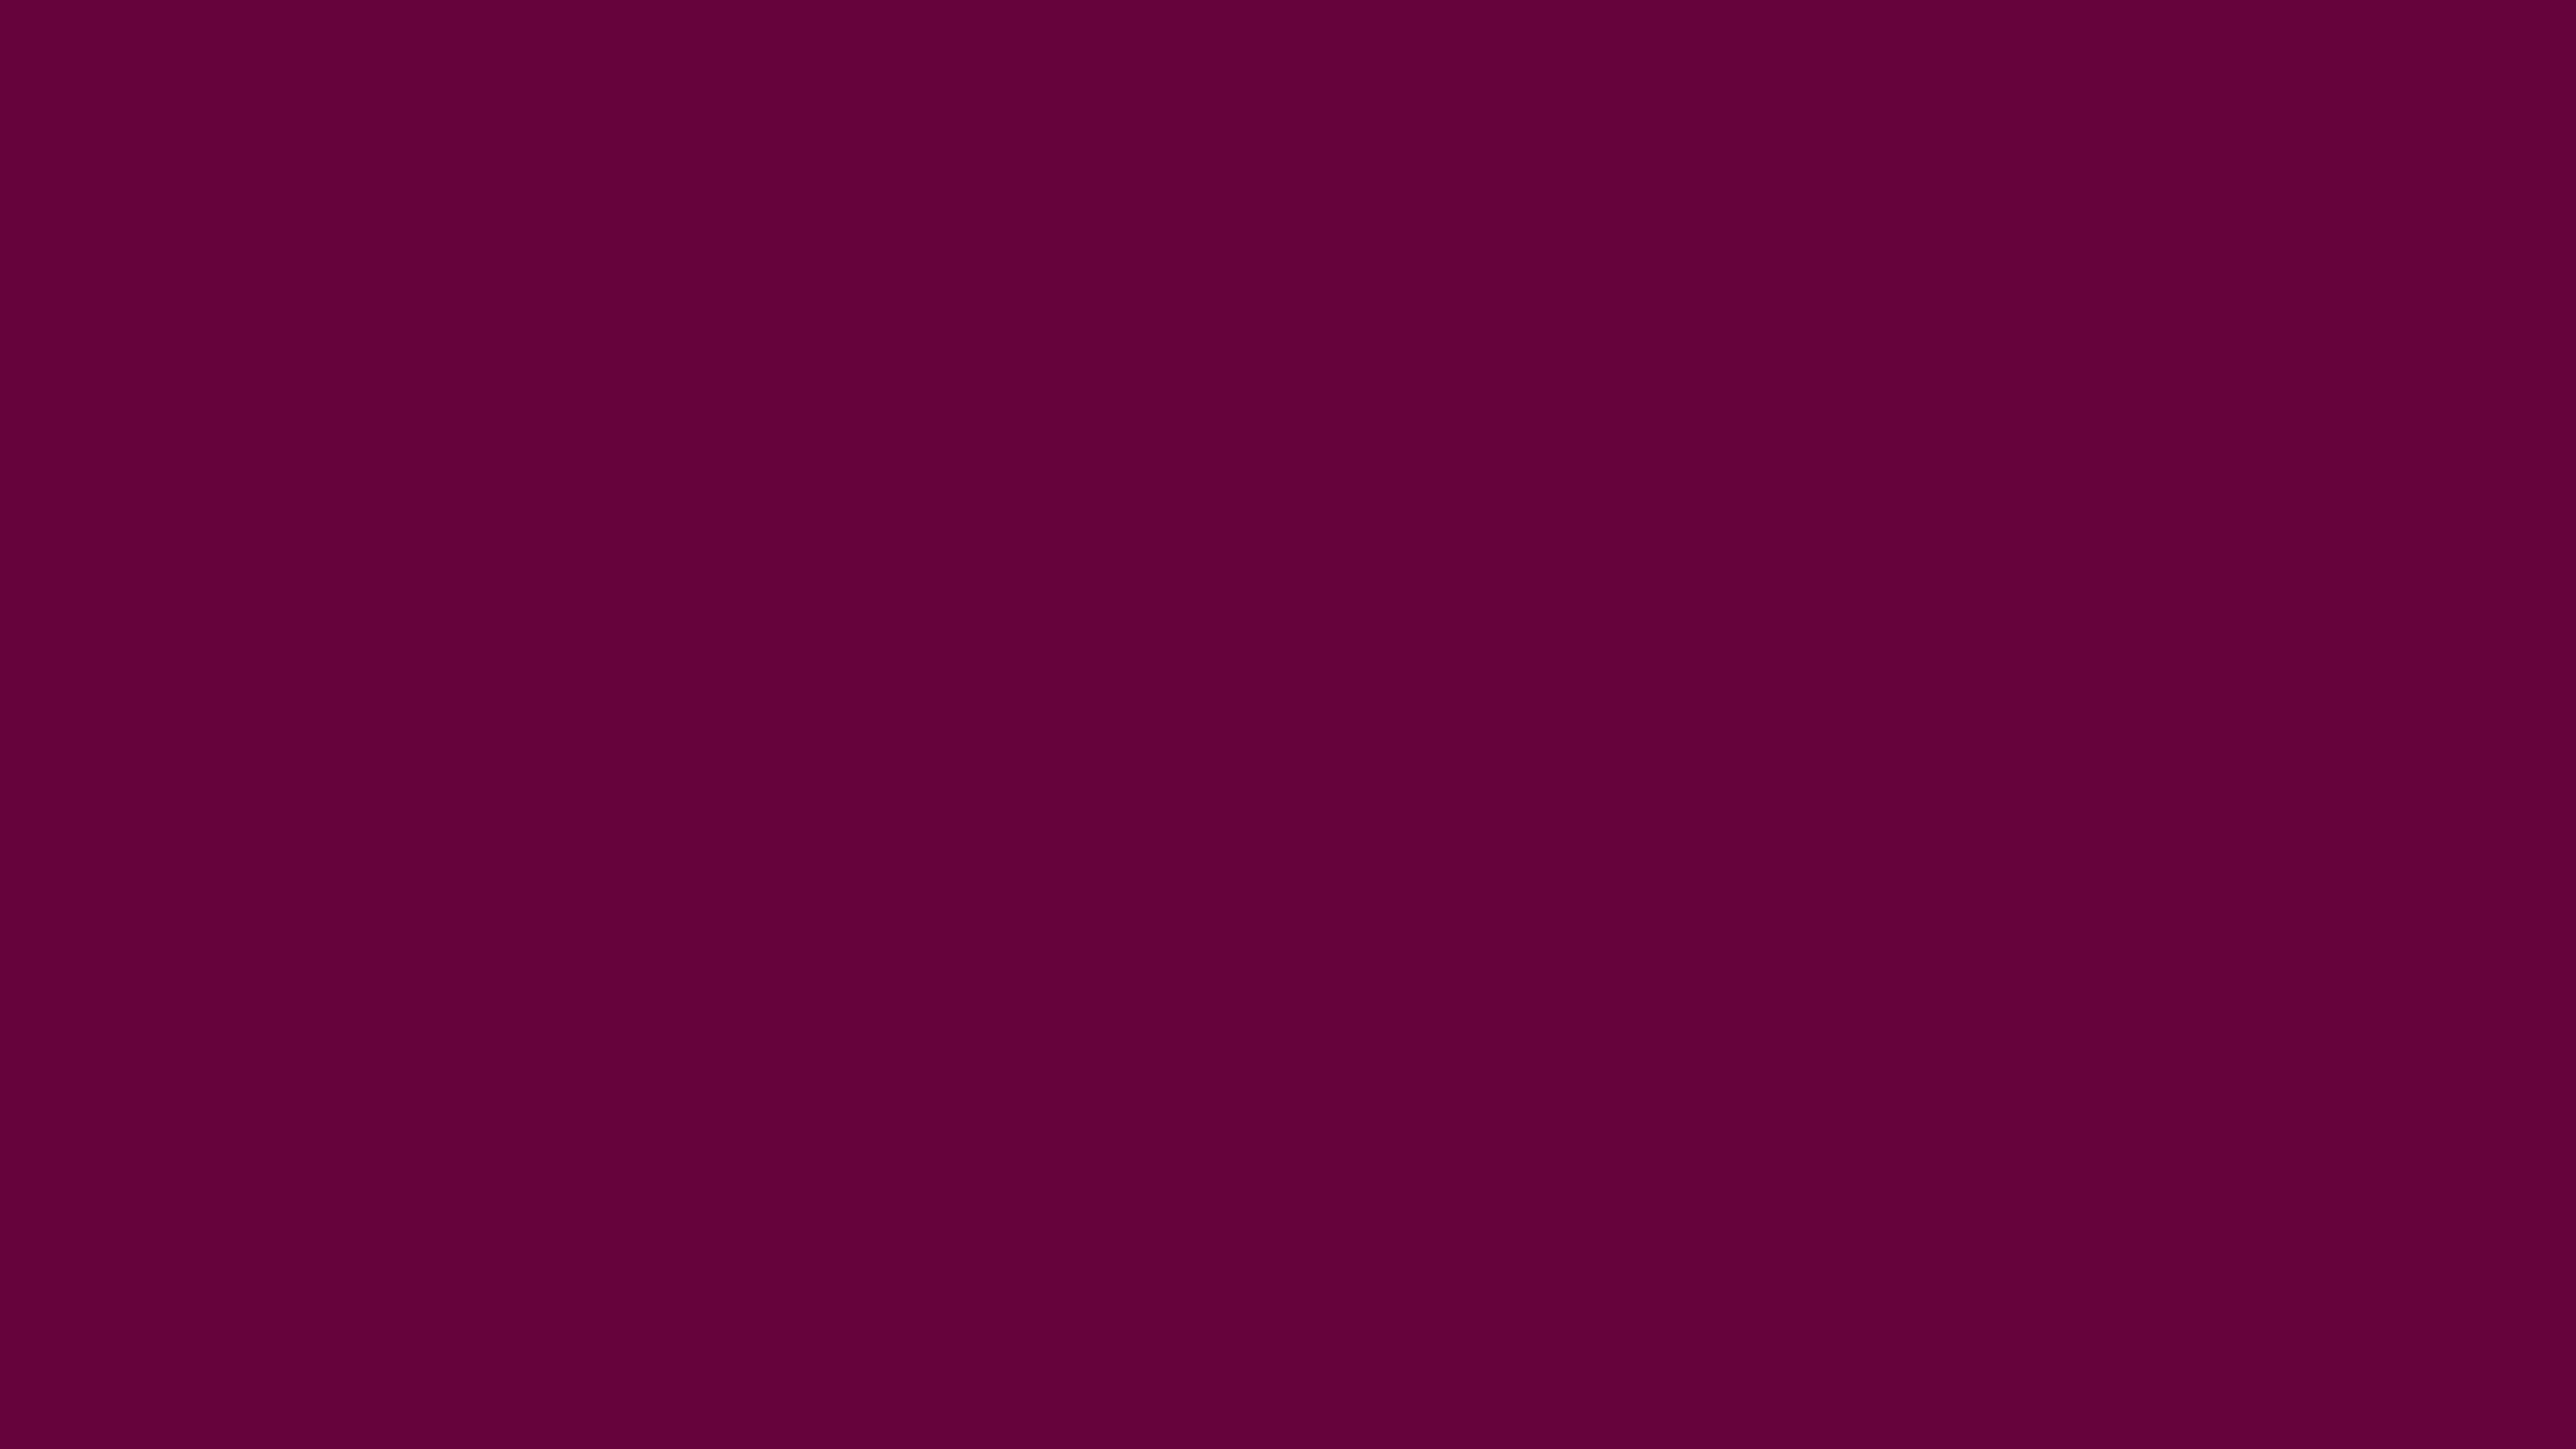 5120x2880 Tyrian Purple Solid Color Background